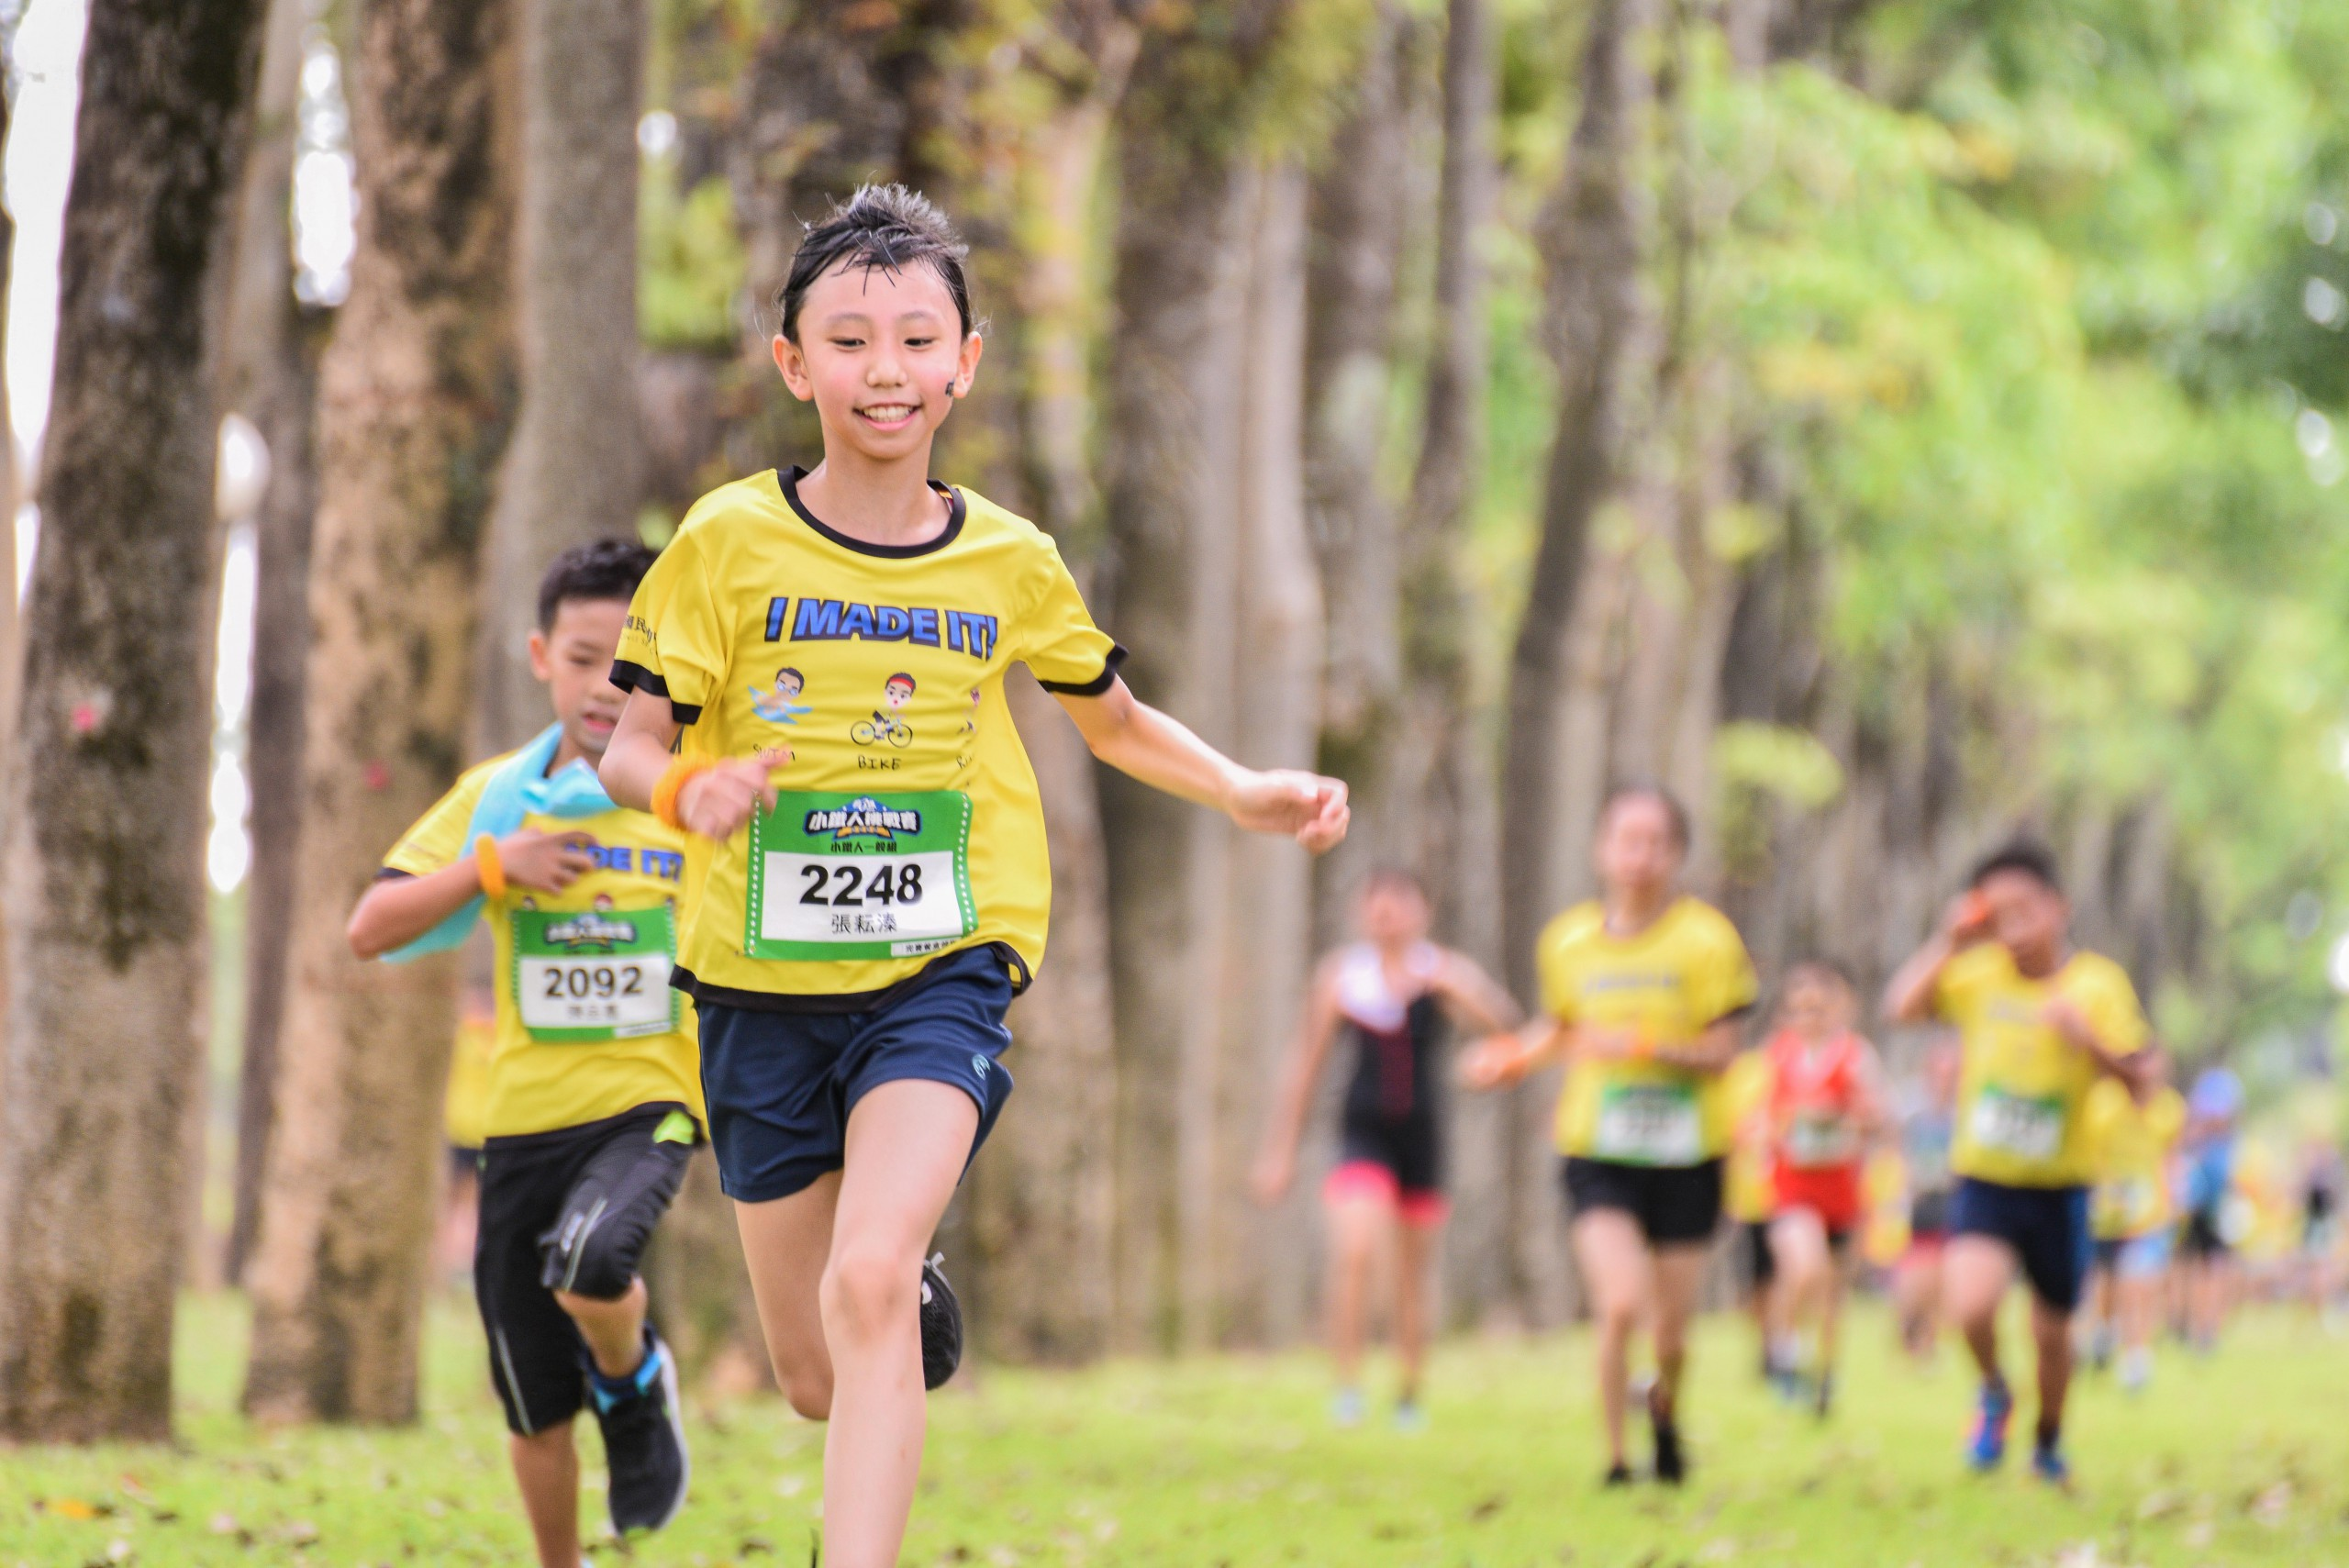 德築-DEZU-project-Fun3sport-children-triathlon-challenge-13